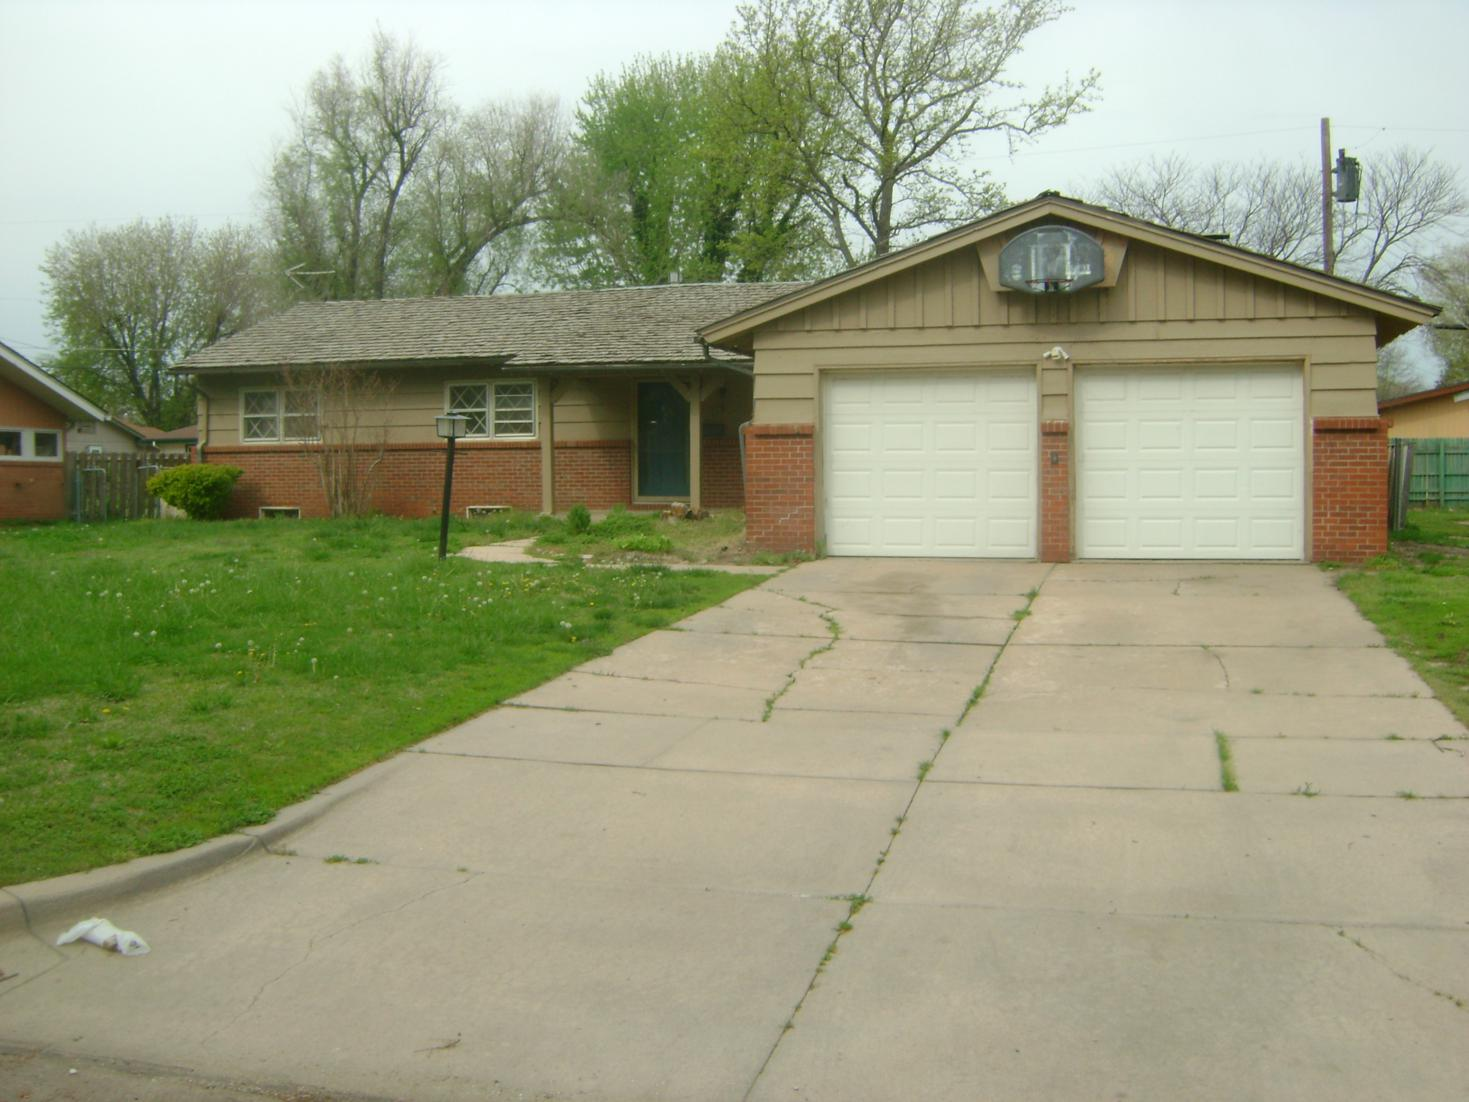 2481 N Coolidge Ave, Wichita, KS 67204